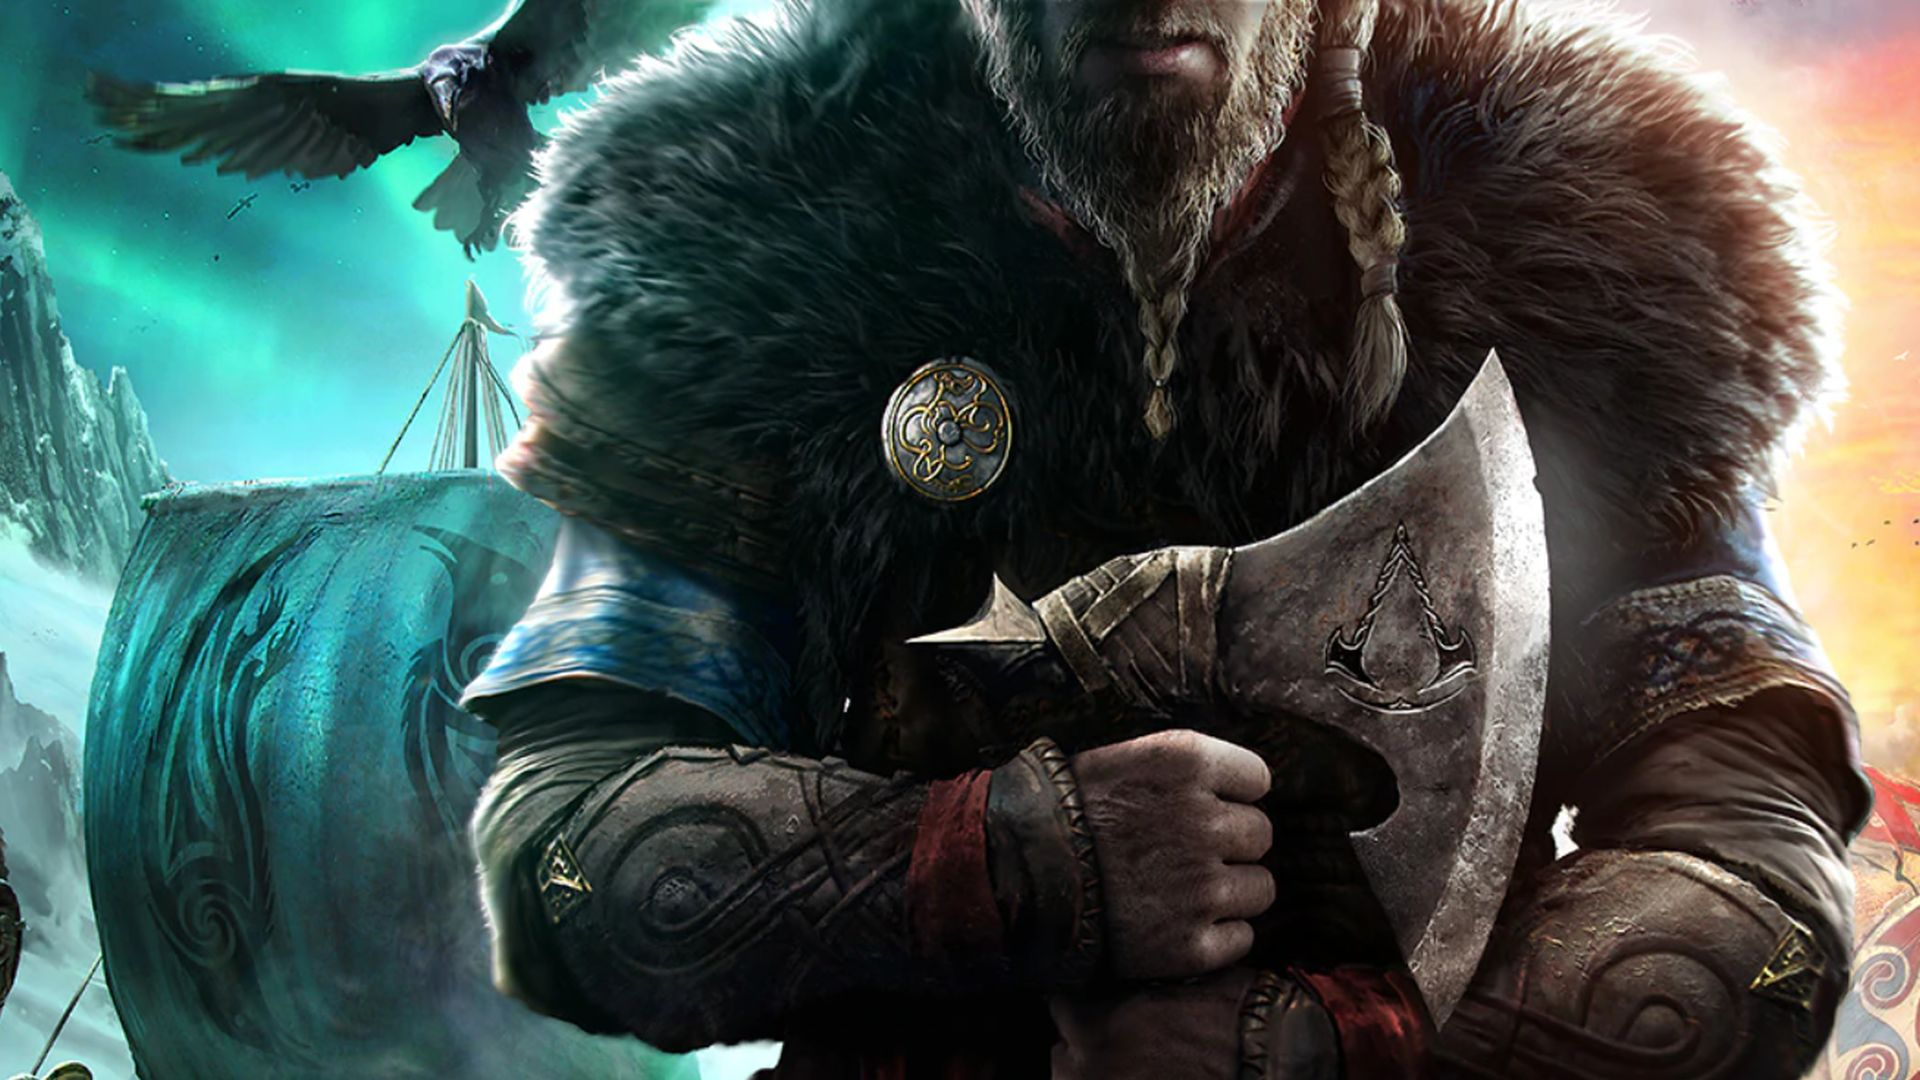 Heres the Assassins Creed Valhalla trailer reveal PCGamesN 1920x1080